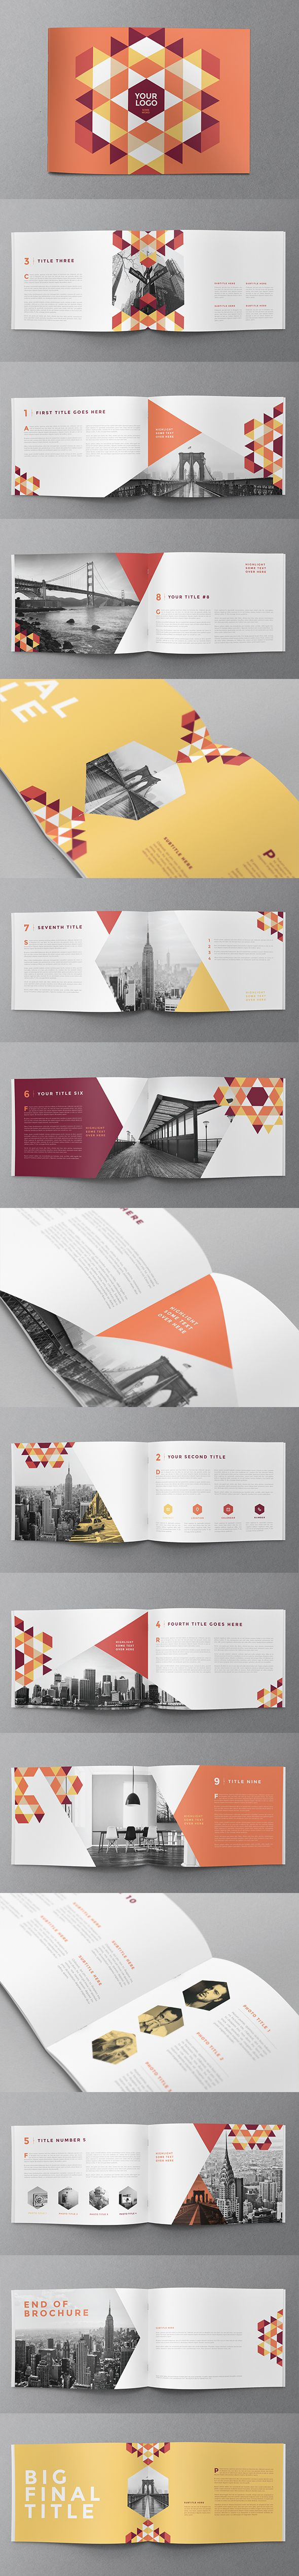 Modern Red Pattern Brochure. Download here: http://graphicriver.net/item/modern-red-pattern-brochure/11973823?ref=abradesign #brochure #design #layout